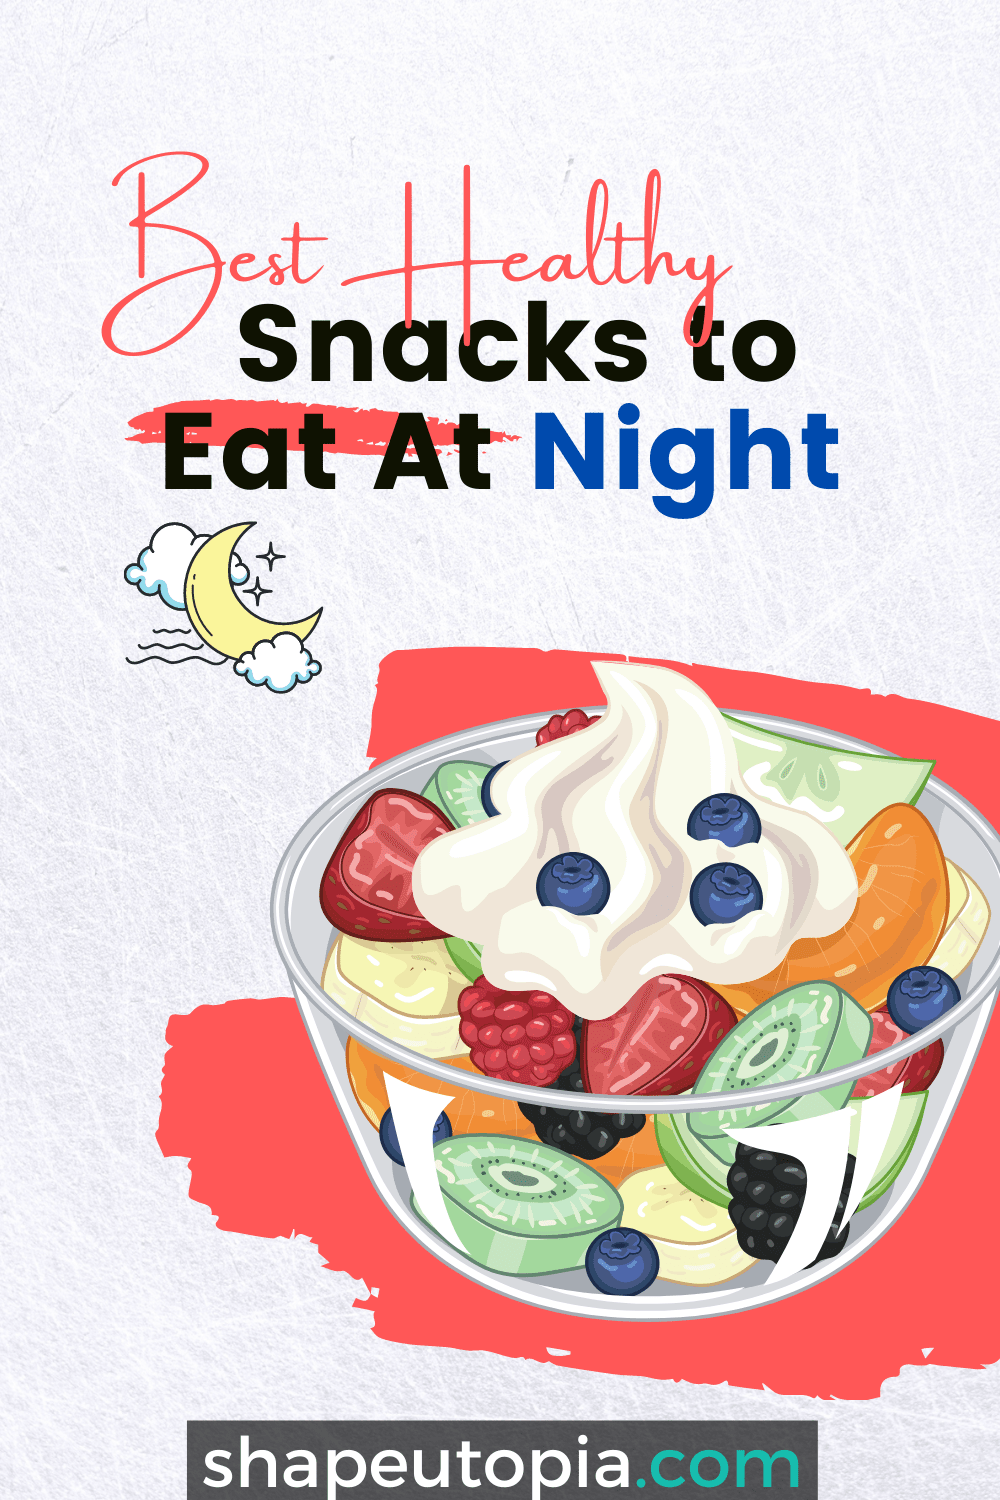 Best Healthy Snacks to Eat At Night